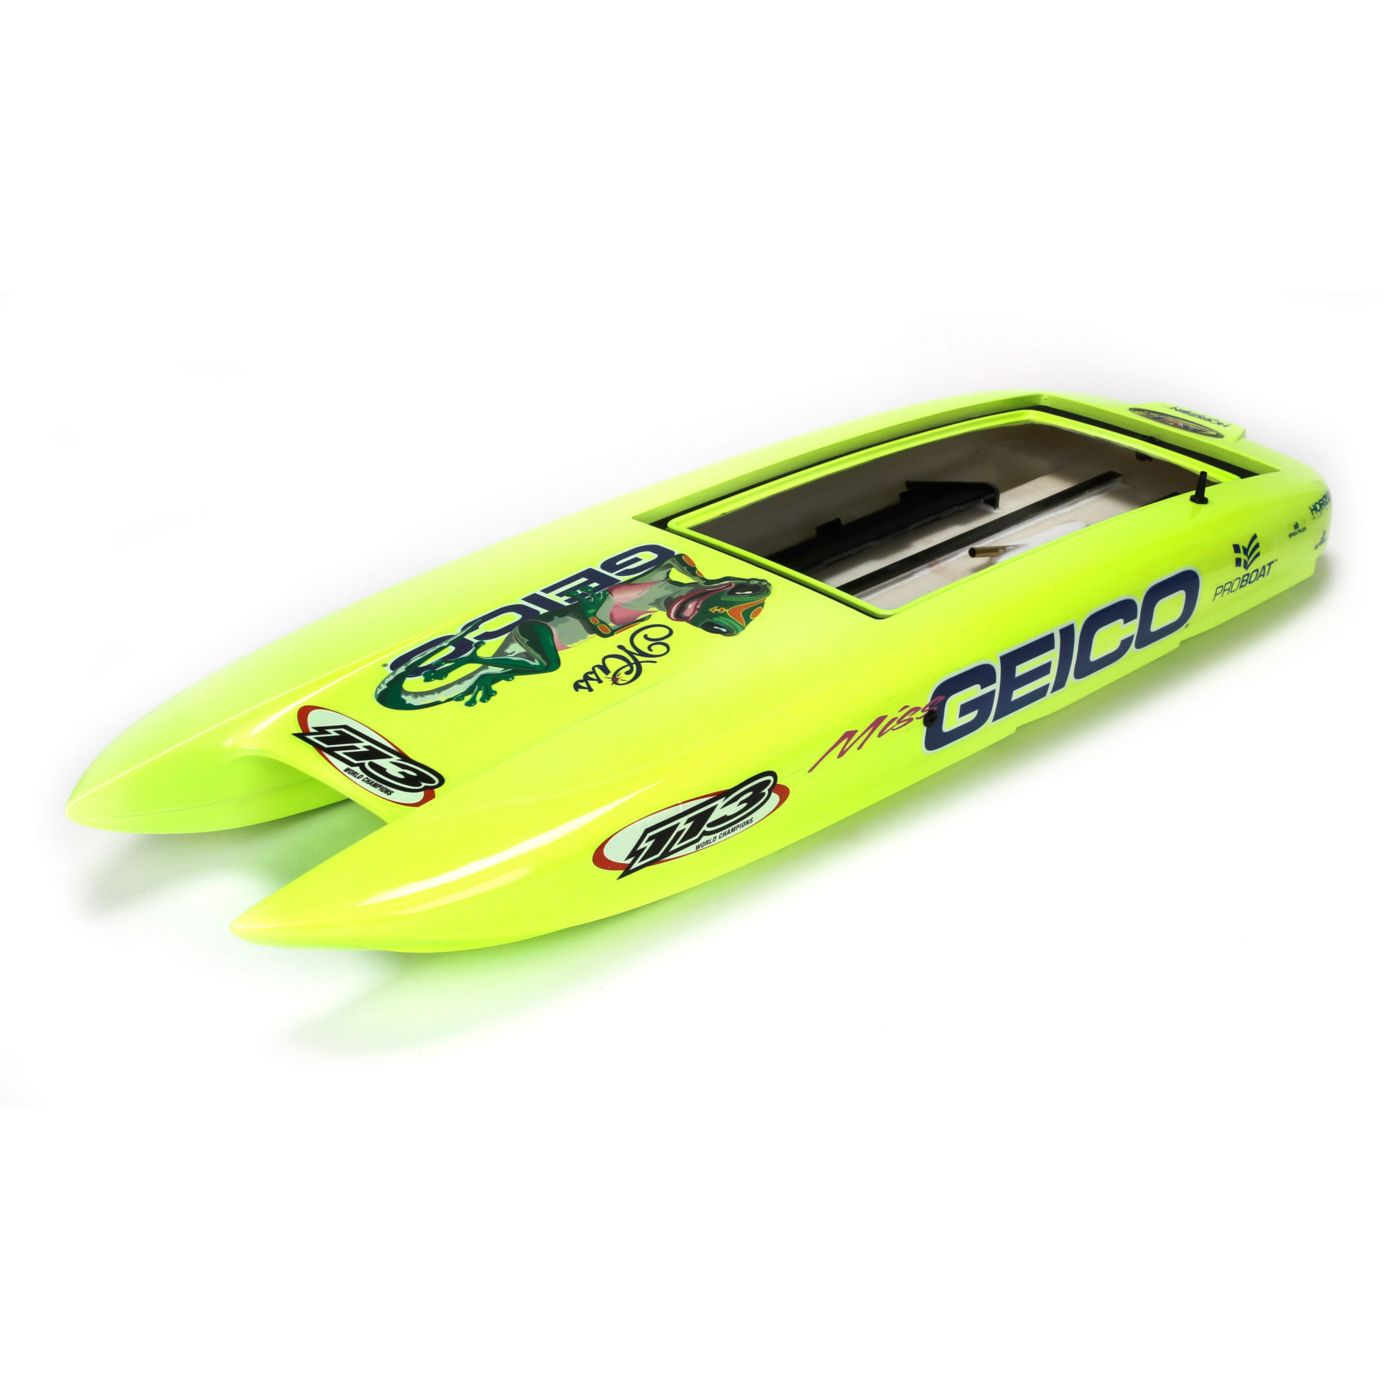 Hull and Decal: Miss Geico 29 V3  (PRB281022)